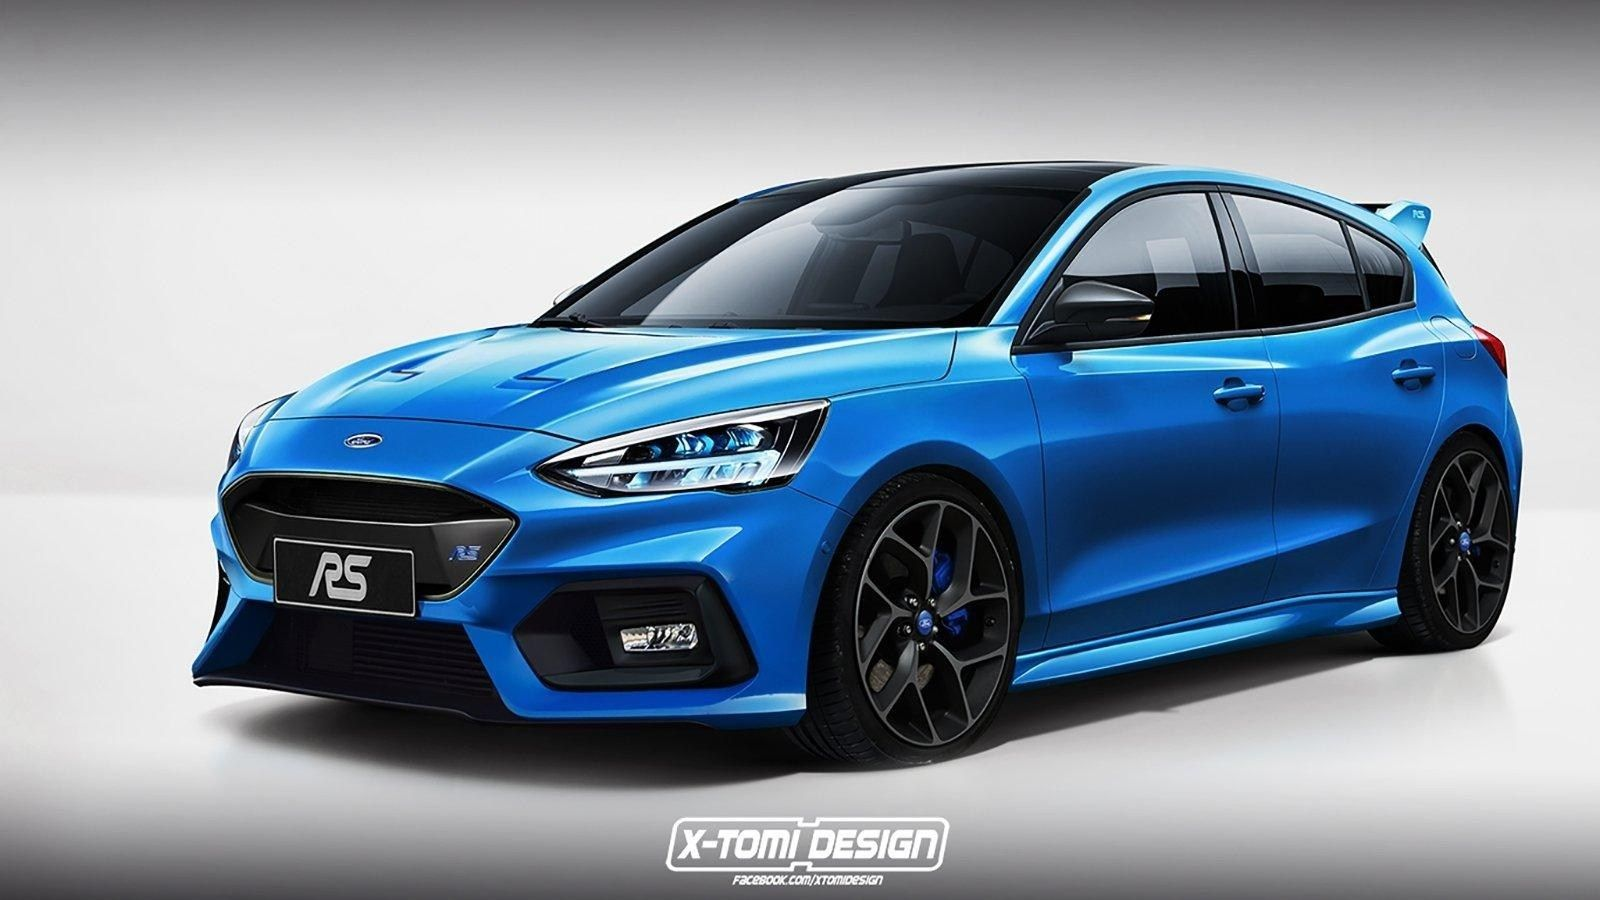 2019 Ford Fiesta St Rs Ford Focus Ford Opel Corsa